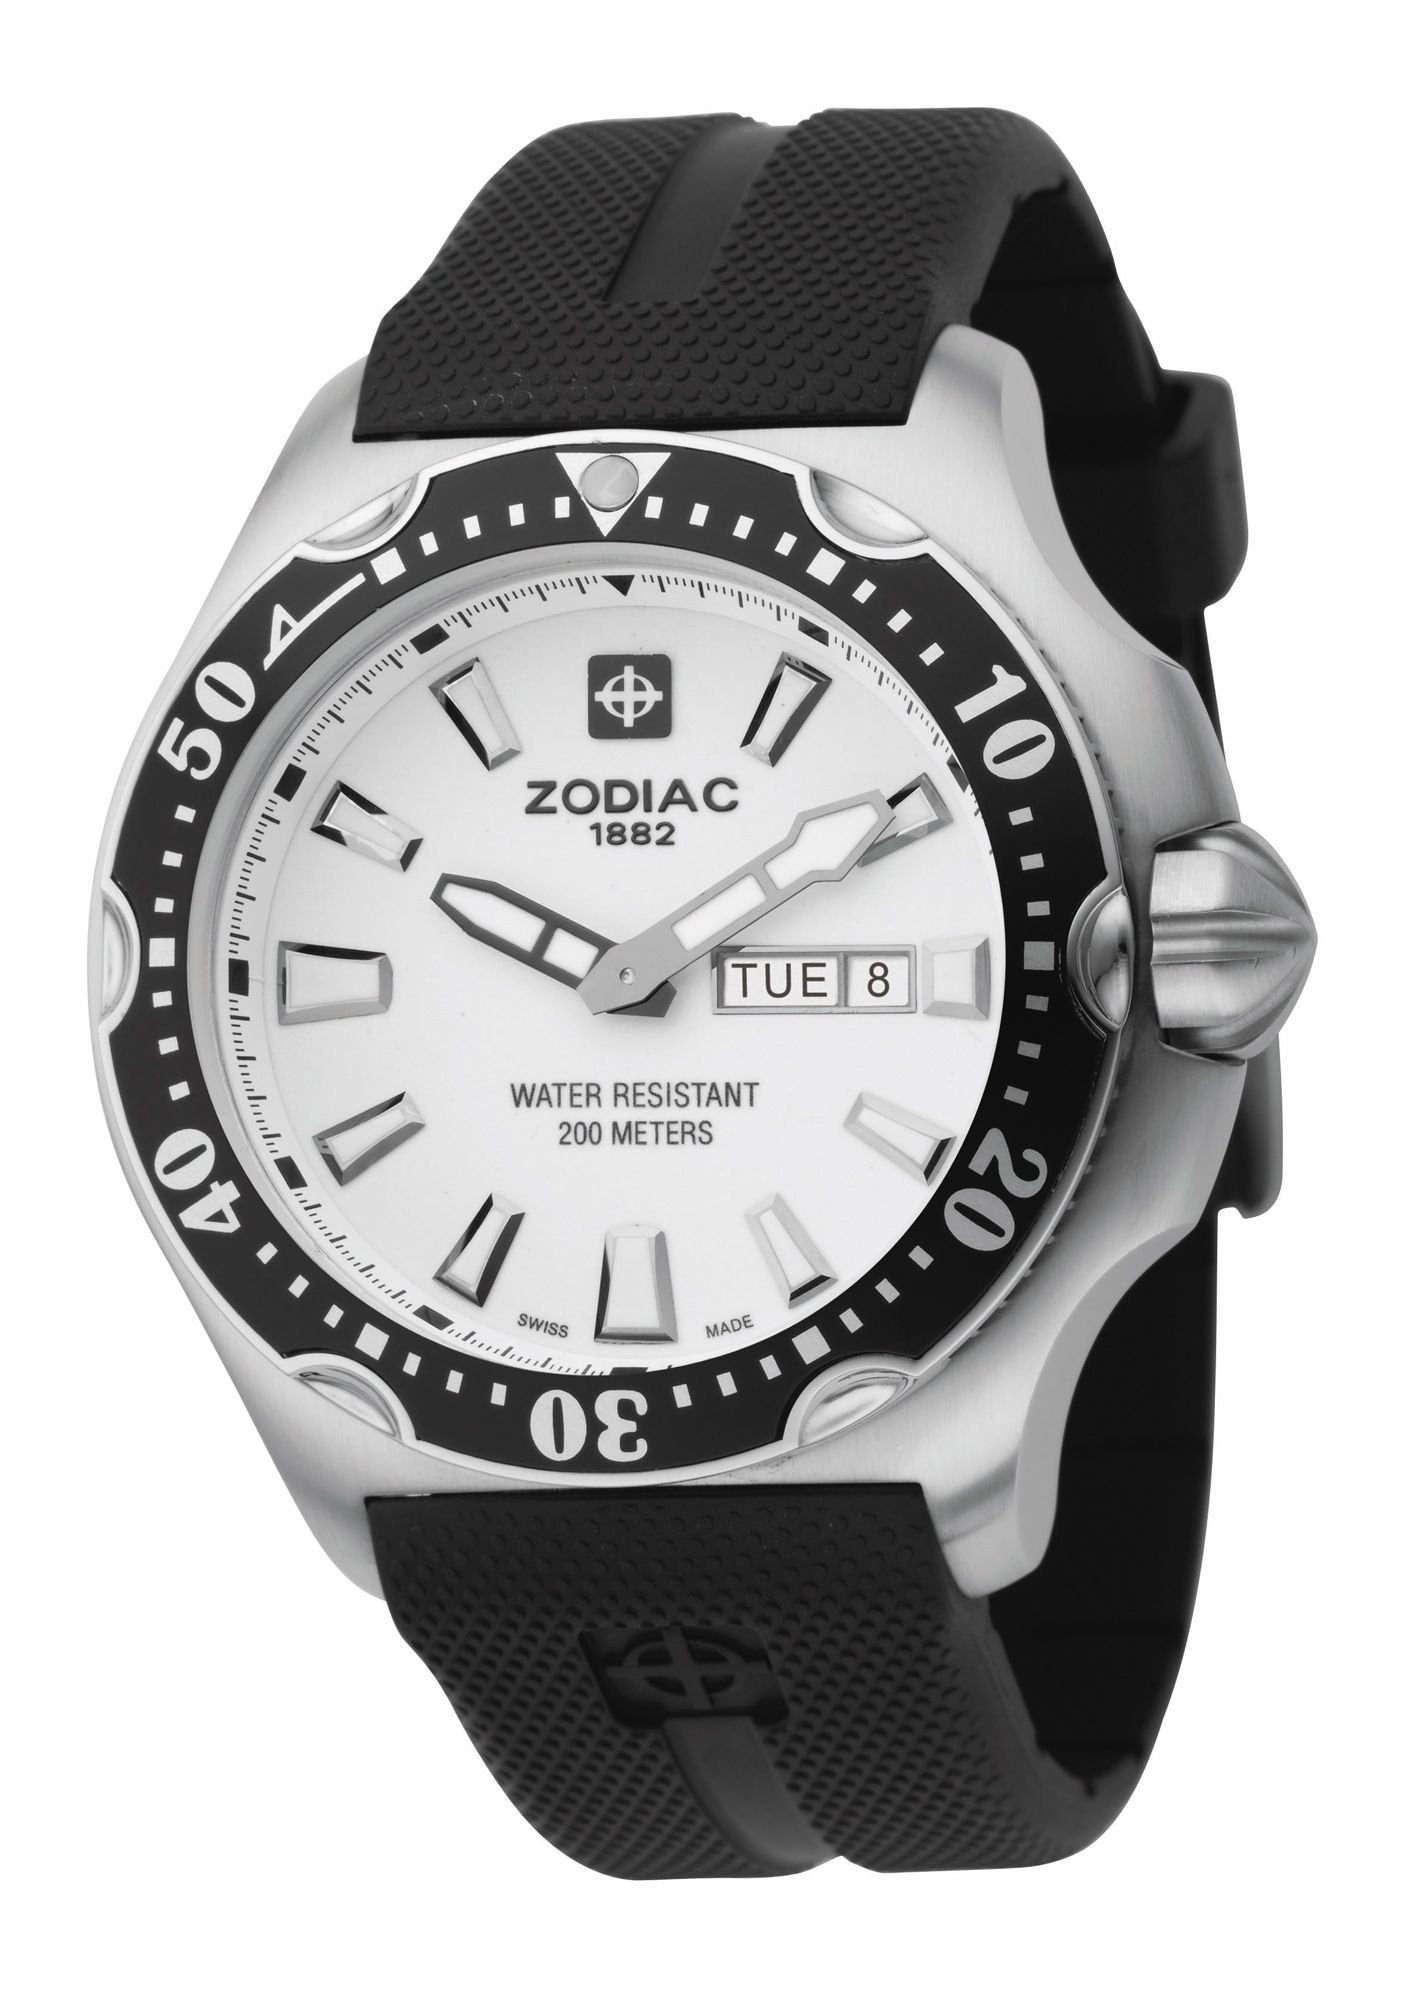 Zodiac Adventure sport ZO7901 gentlemens watch product image